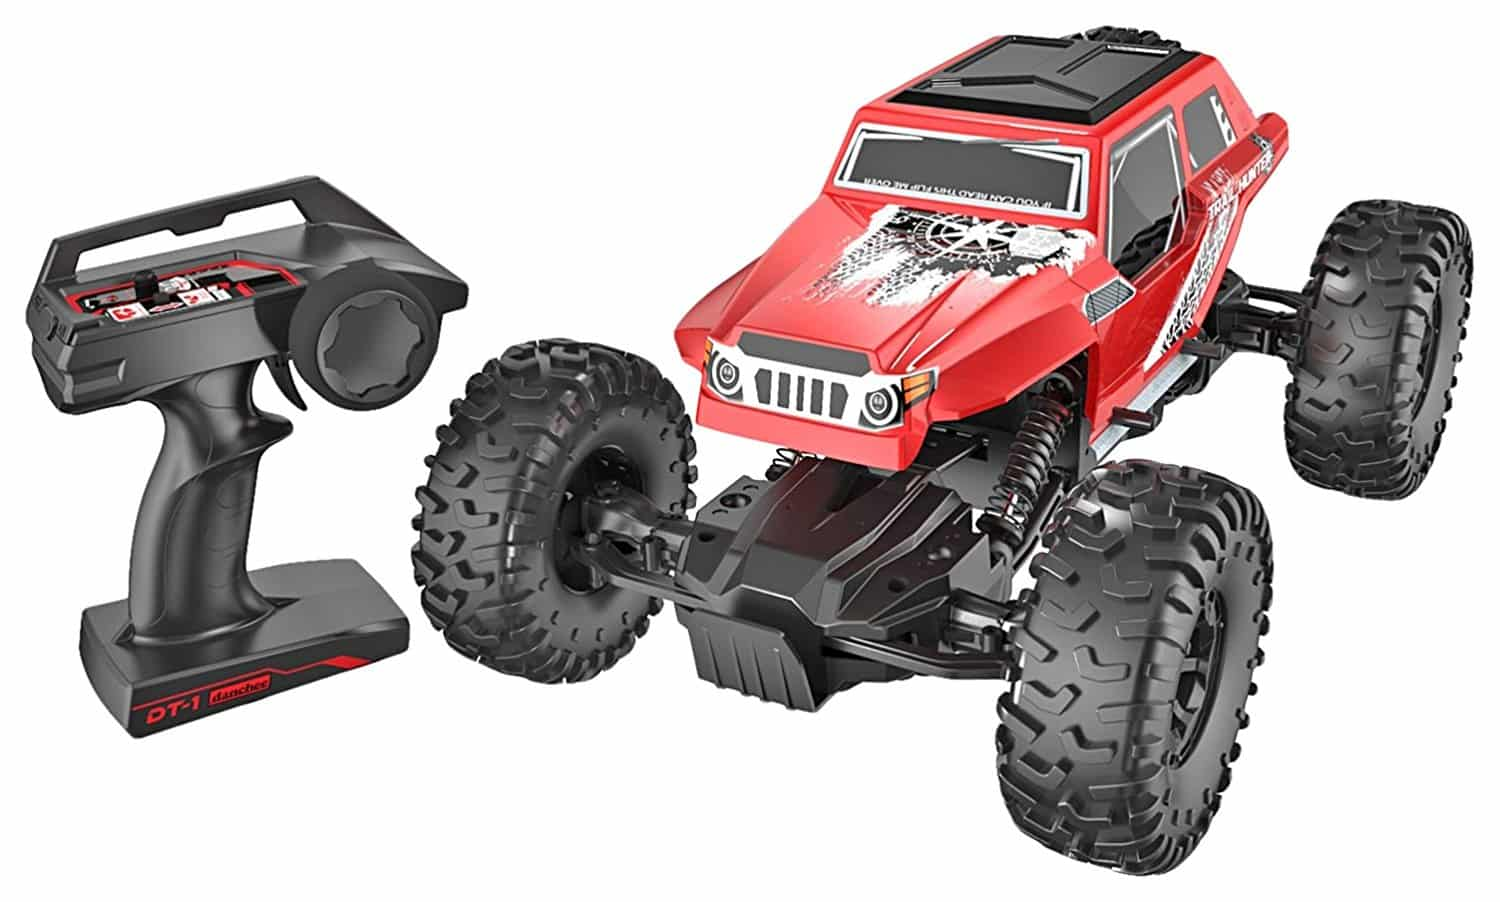 Carrinho Controle remoto danchee Trail Hunter 1/12 Scale Remote Control Rock Crawler Off Road Truck Toy